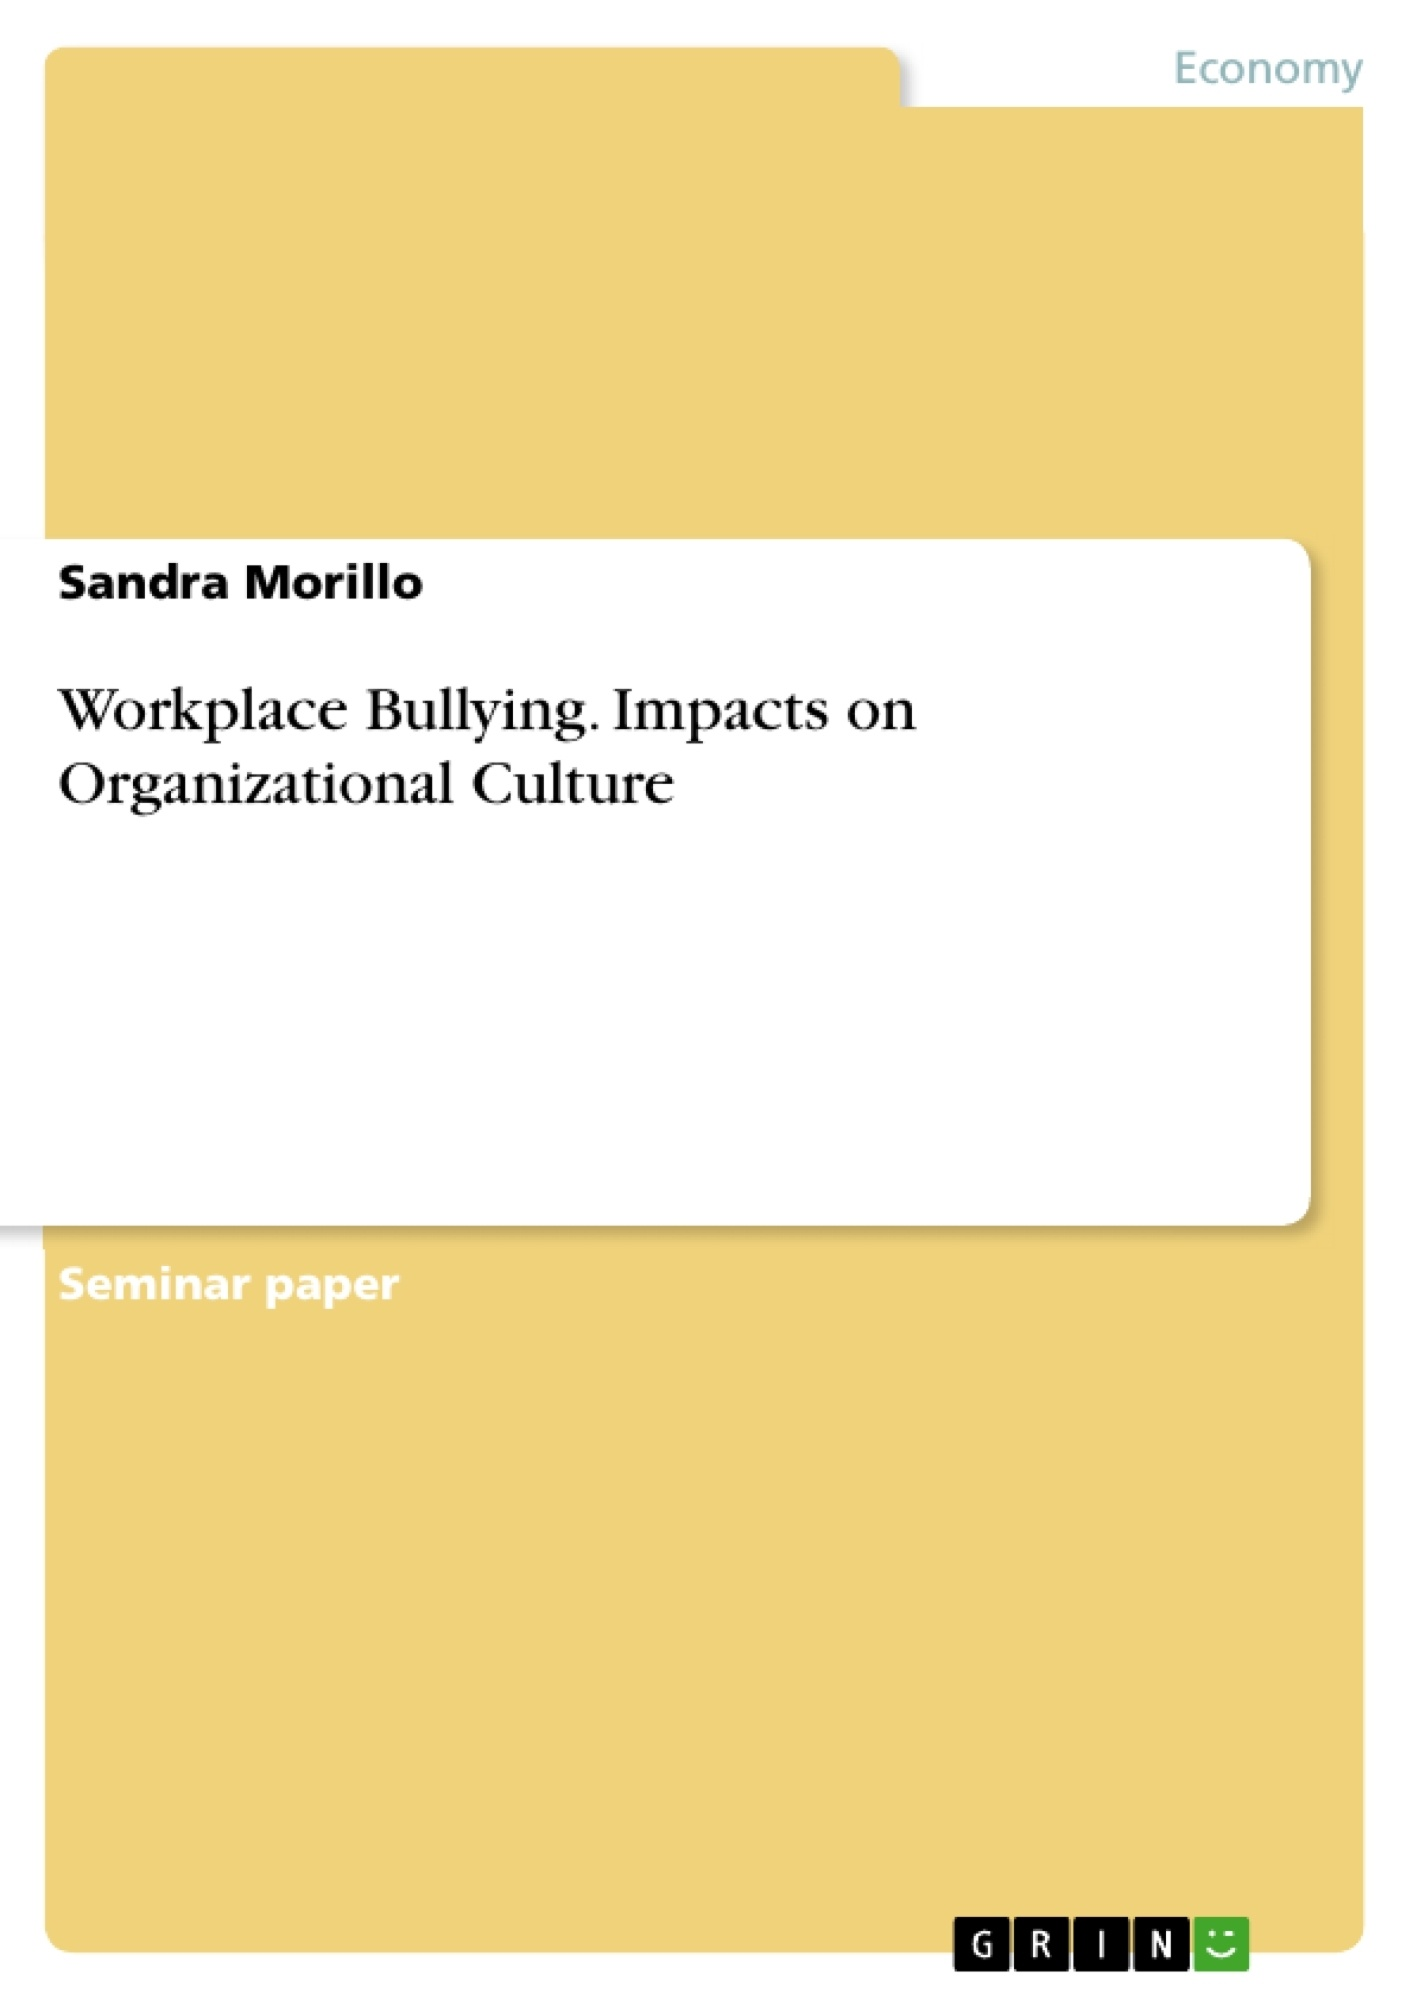 Title: Workplace Bullying. Impacts on Organizational Culture